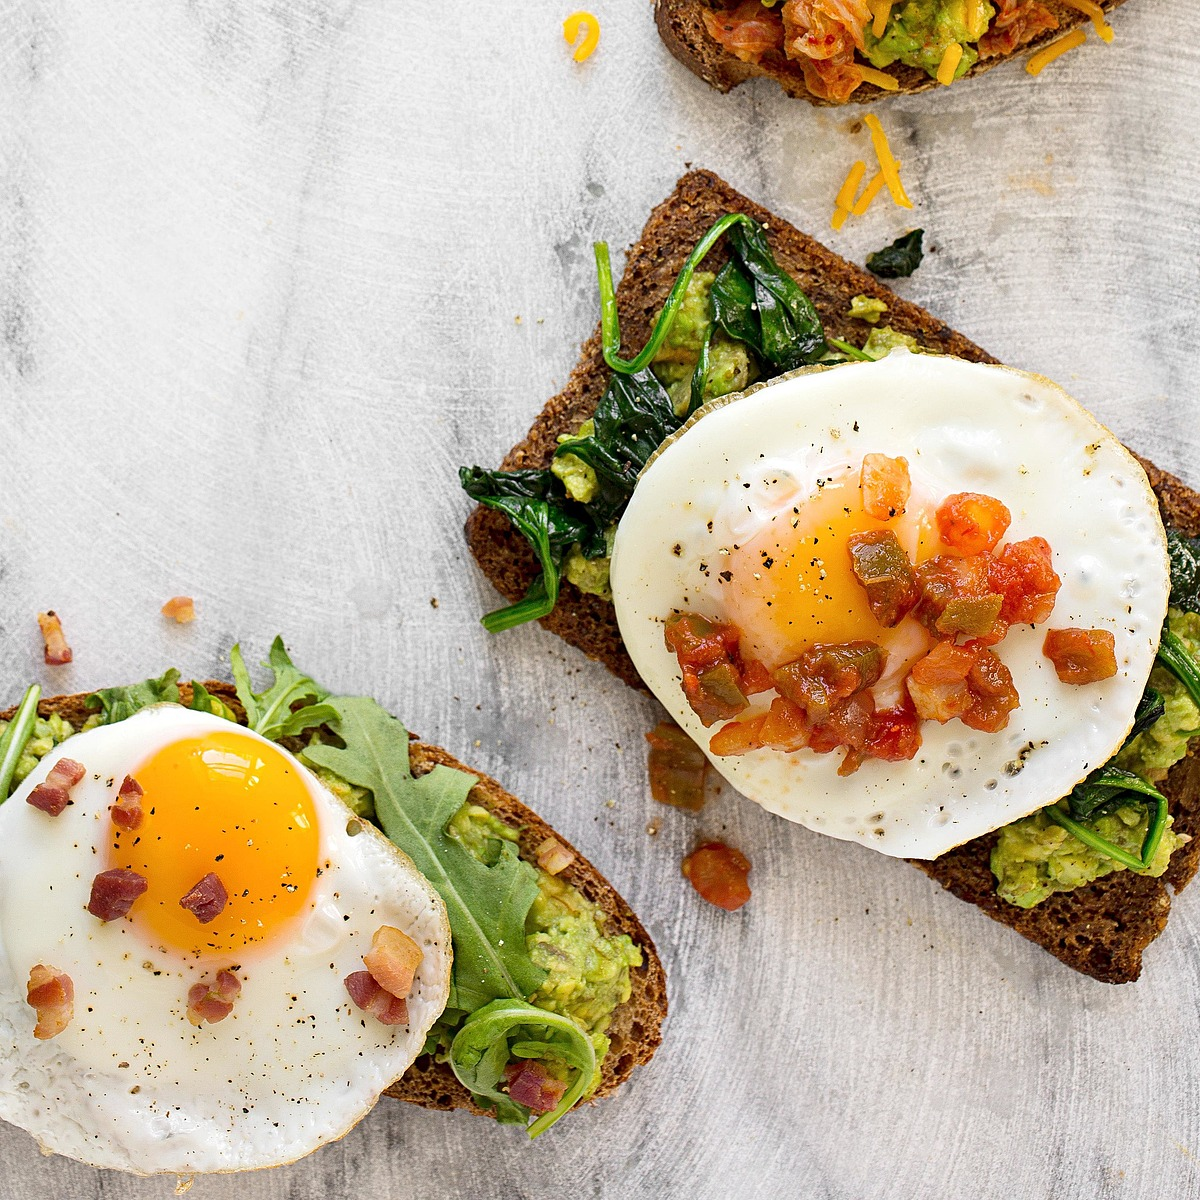 avocado toast with egg, arugula, and bacon